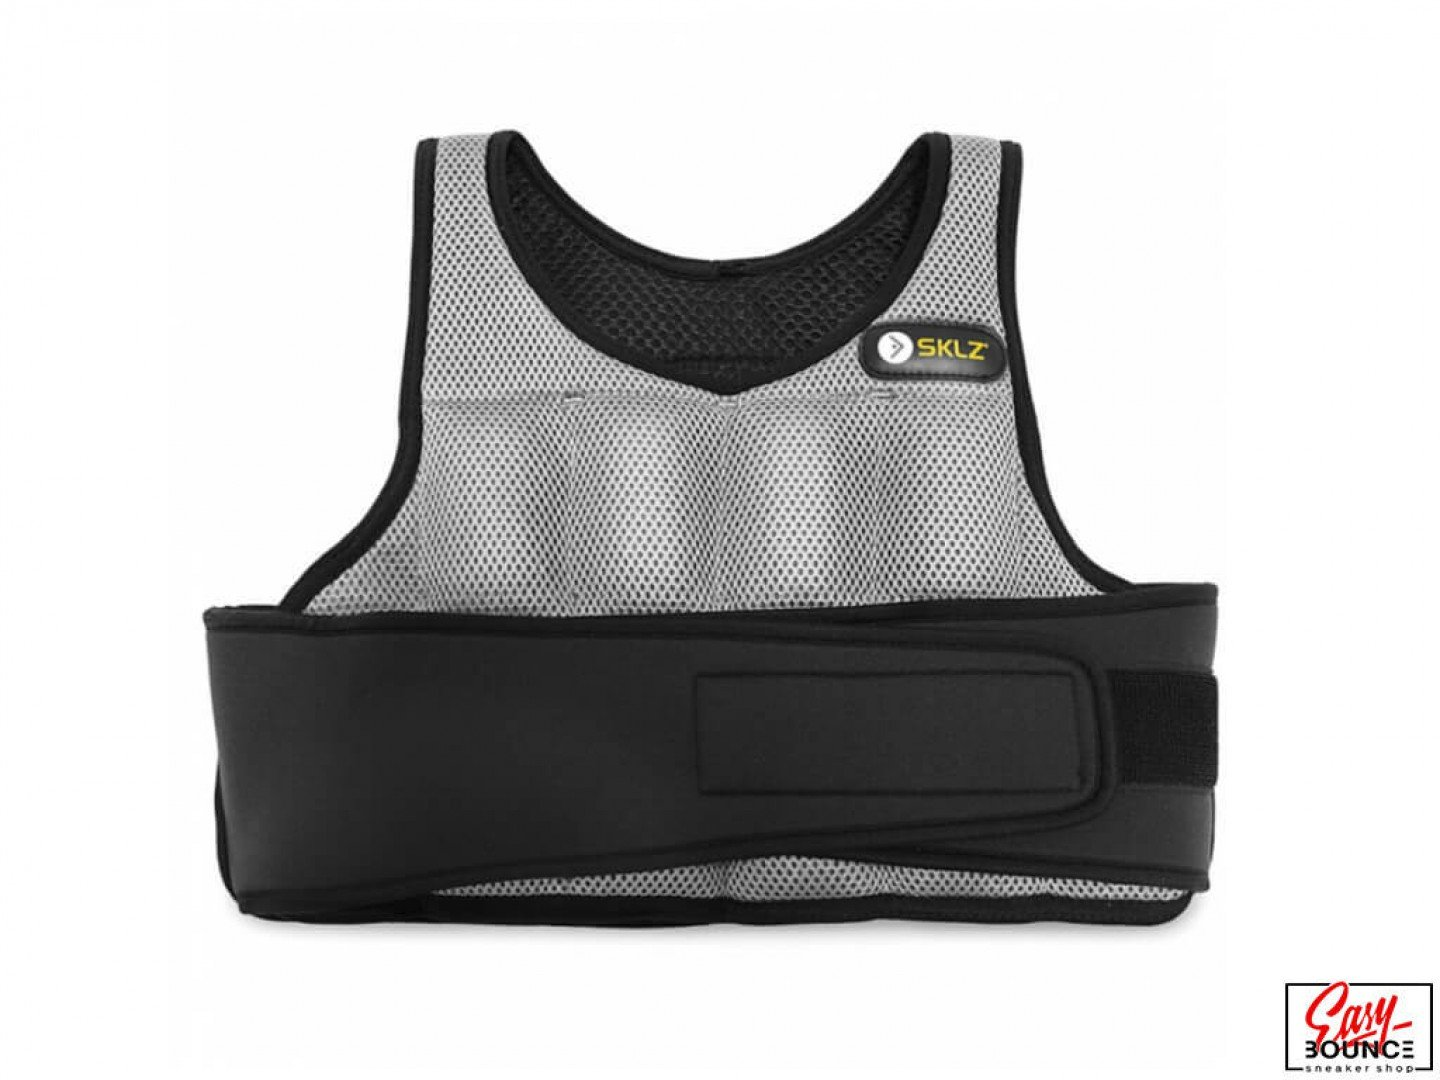 Жилет с утяжелителями до 4,5 кг SKLZ Weighted Vest - 10 LB